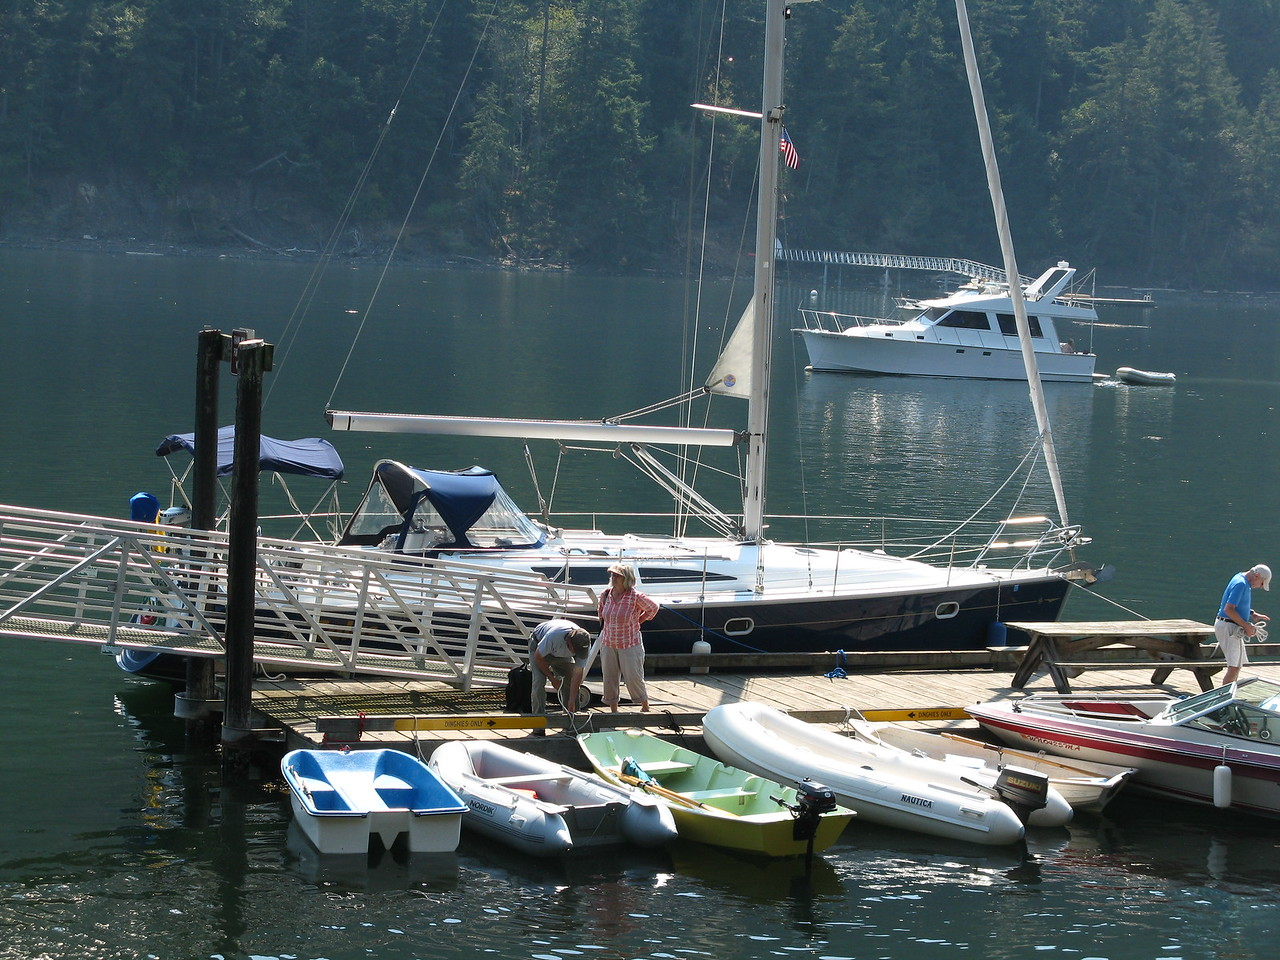 On Wednesday, we sailed from Roche Harbor to Reid Harbor at Stuart Island.